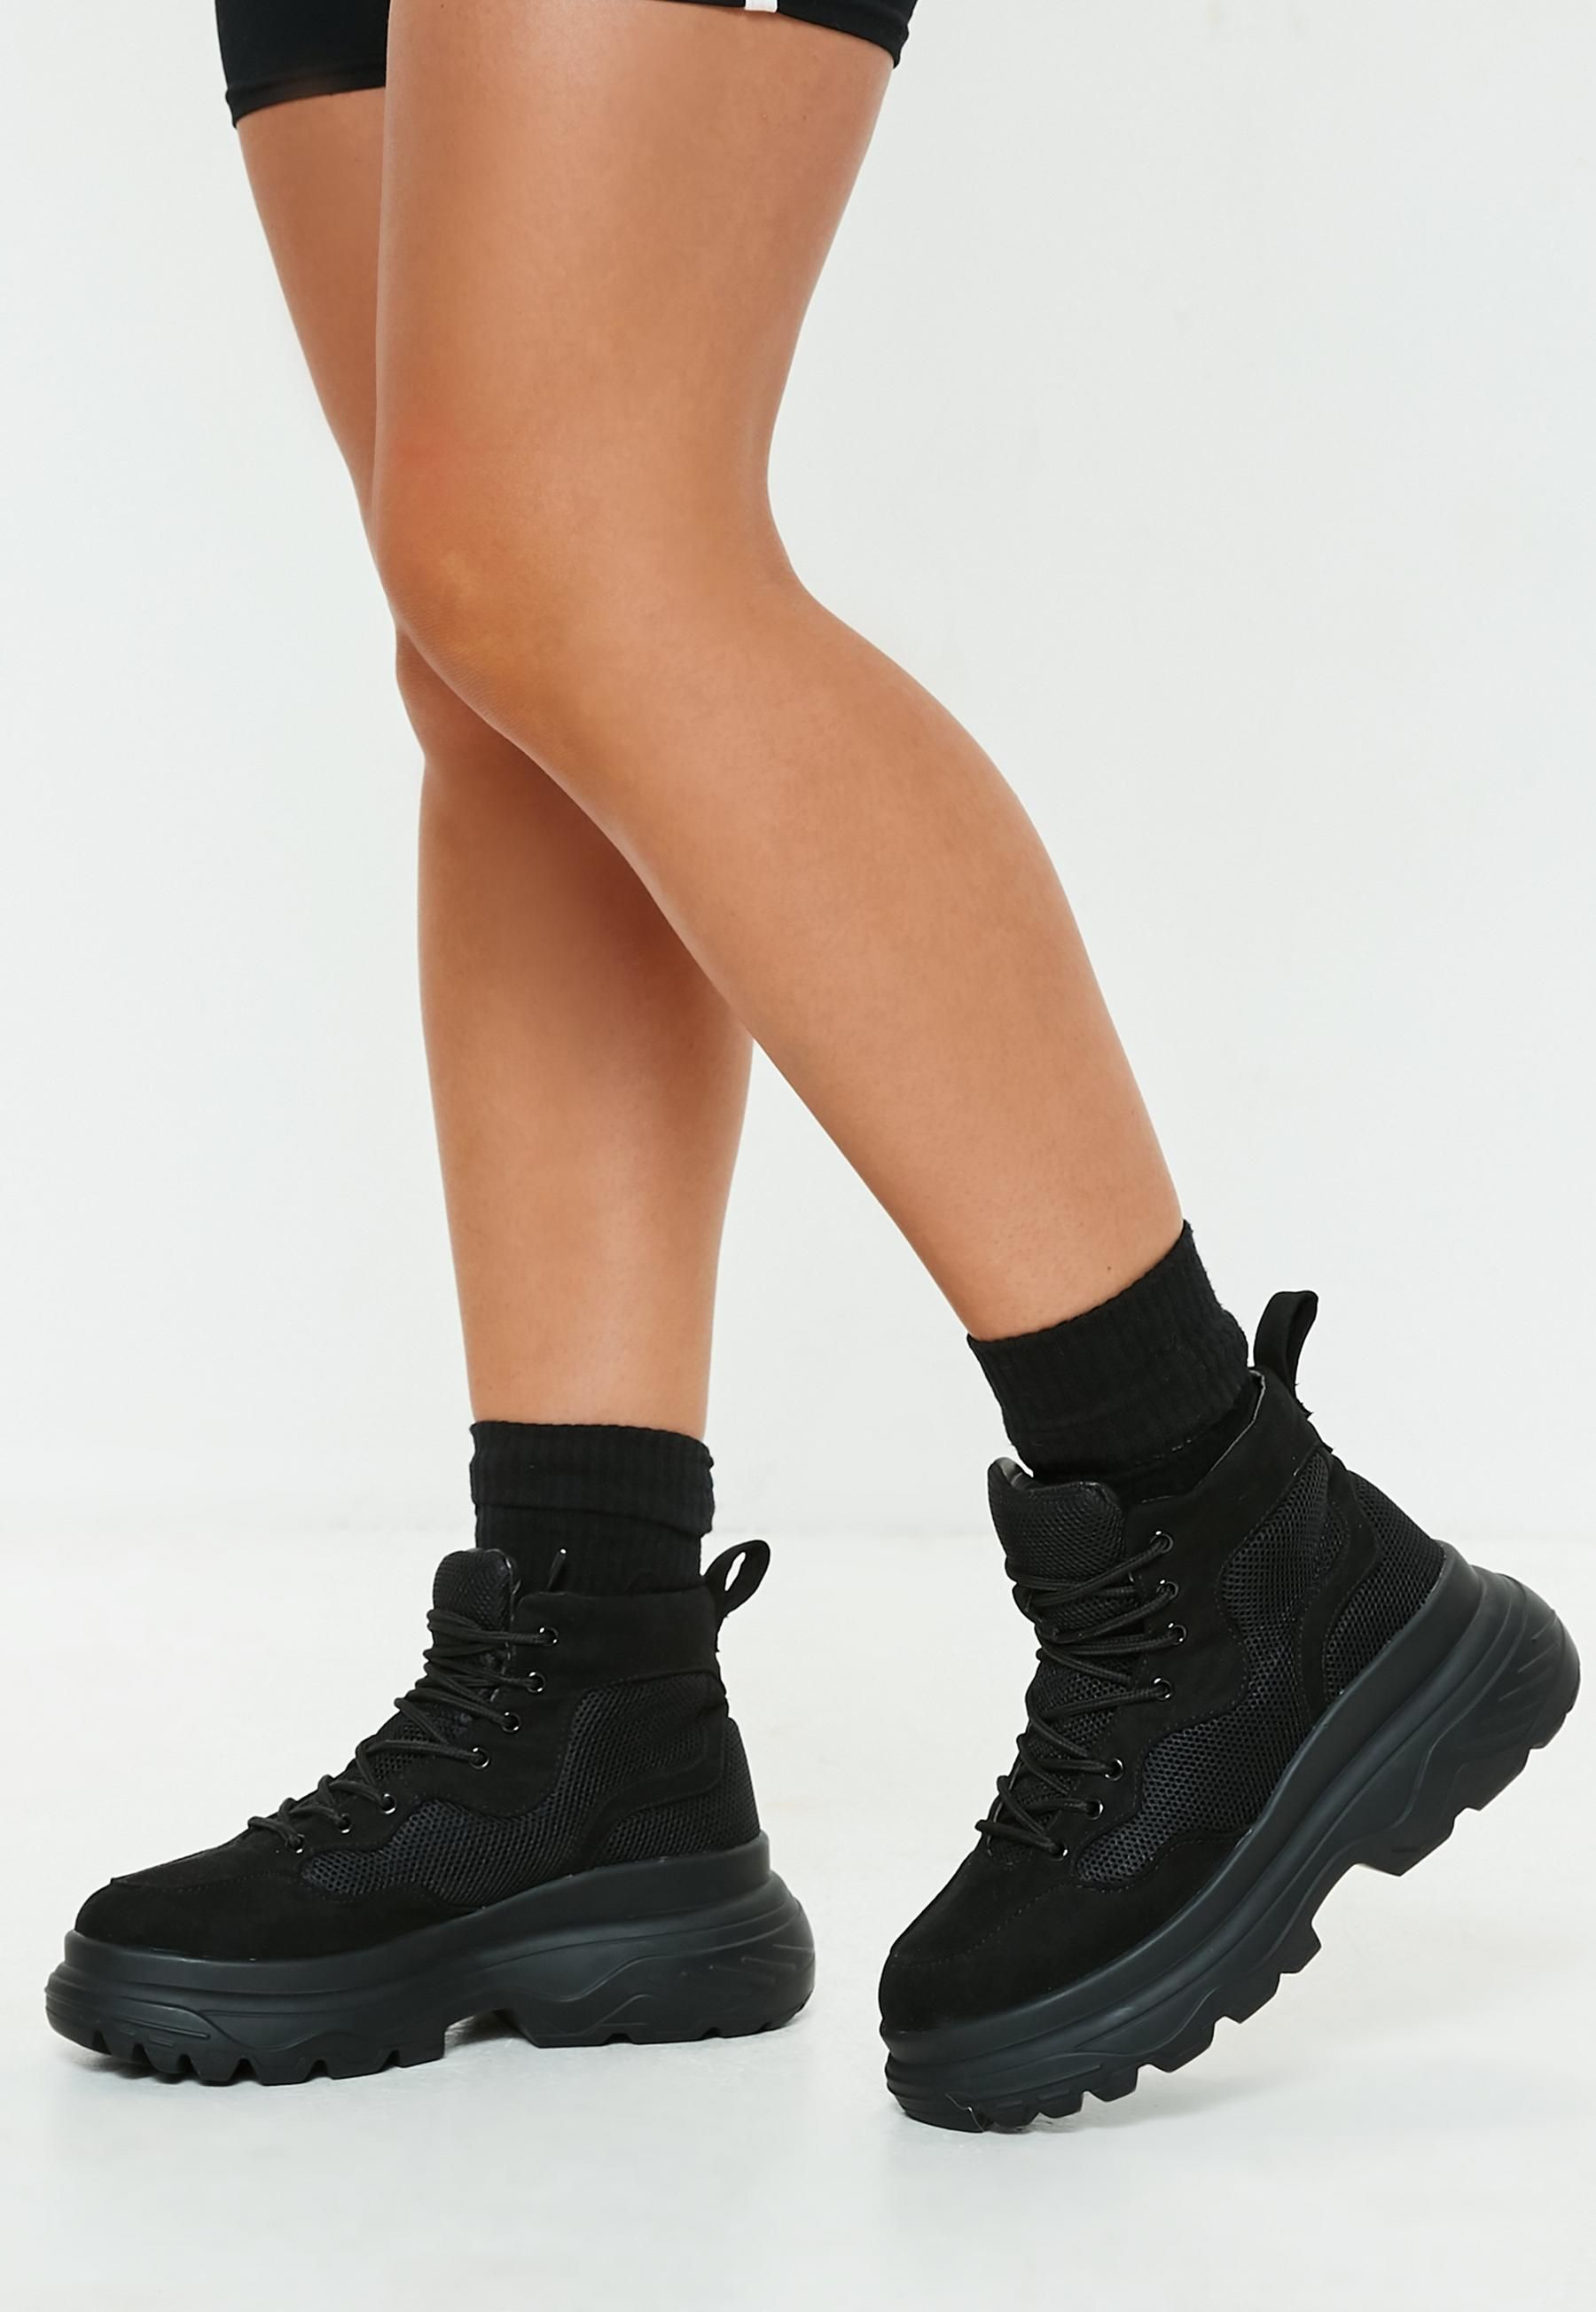 Black Double Sole Hiking Sneaker Boots